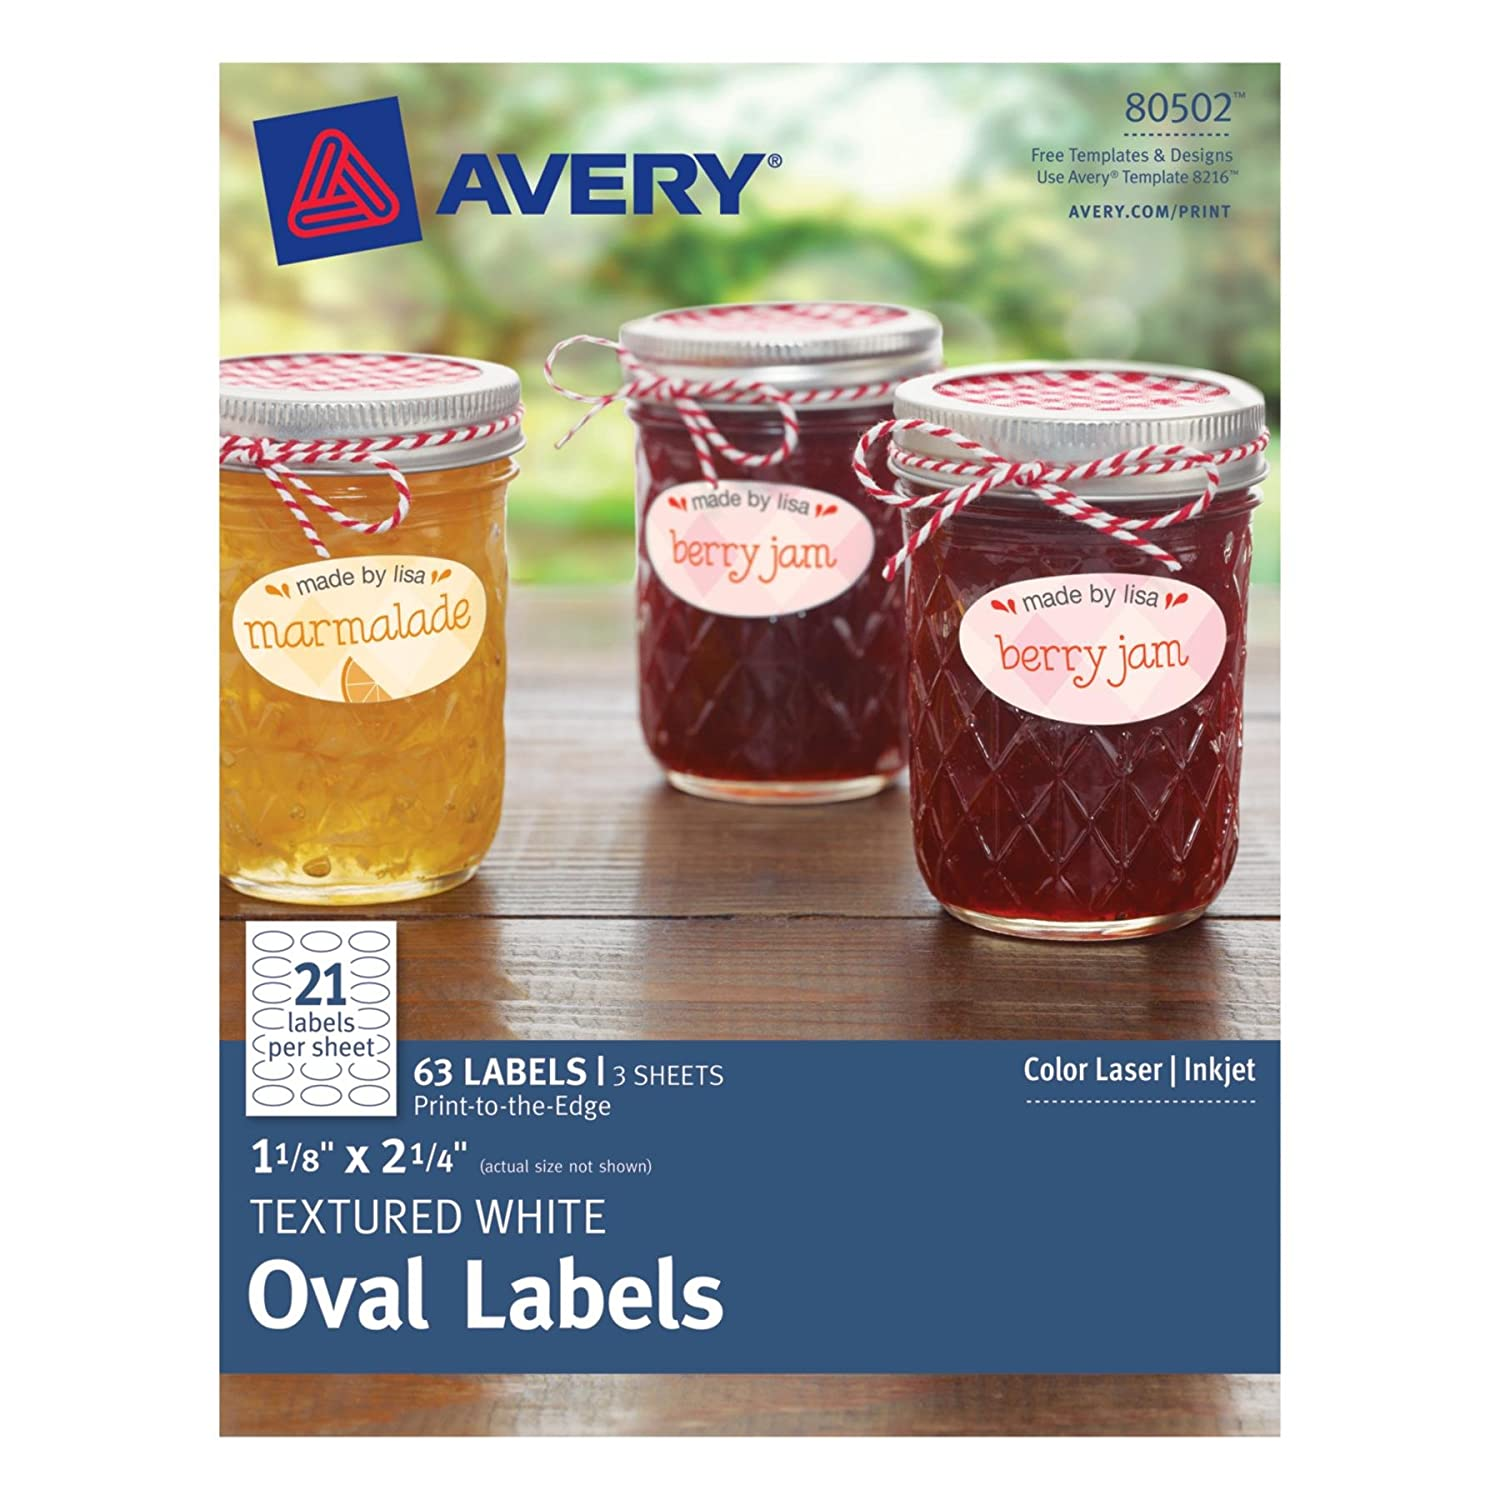 amazoncom avery textured oval labels white 1125 x 225 inches pack of 63 80502 office products